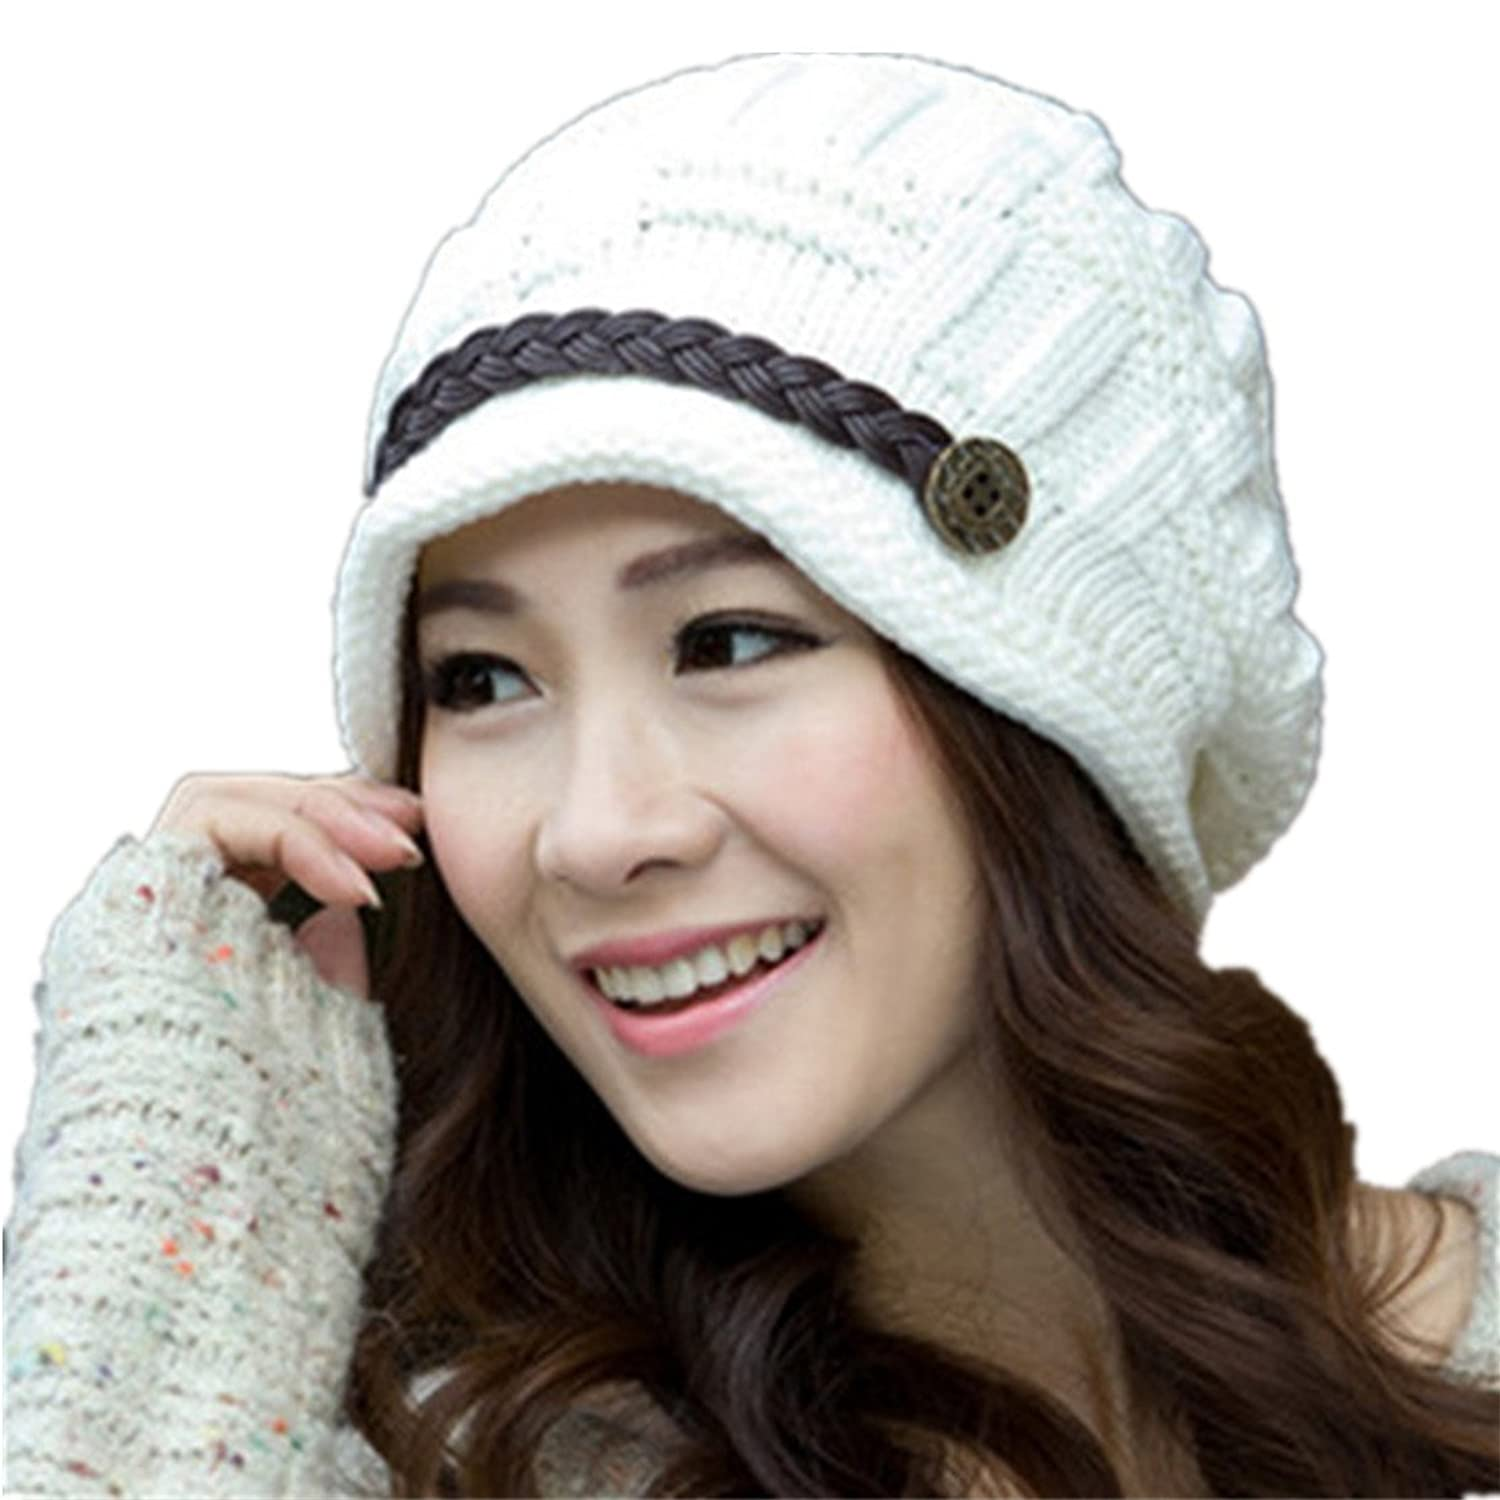 Women Knitted Winter Warm Caps Beanie Ski Hats Crochet Knitted Hat Baggy Slouchy Beret